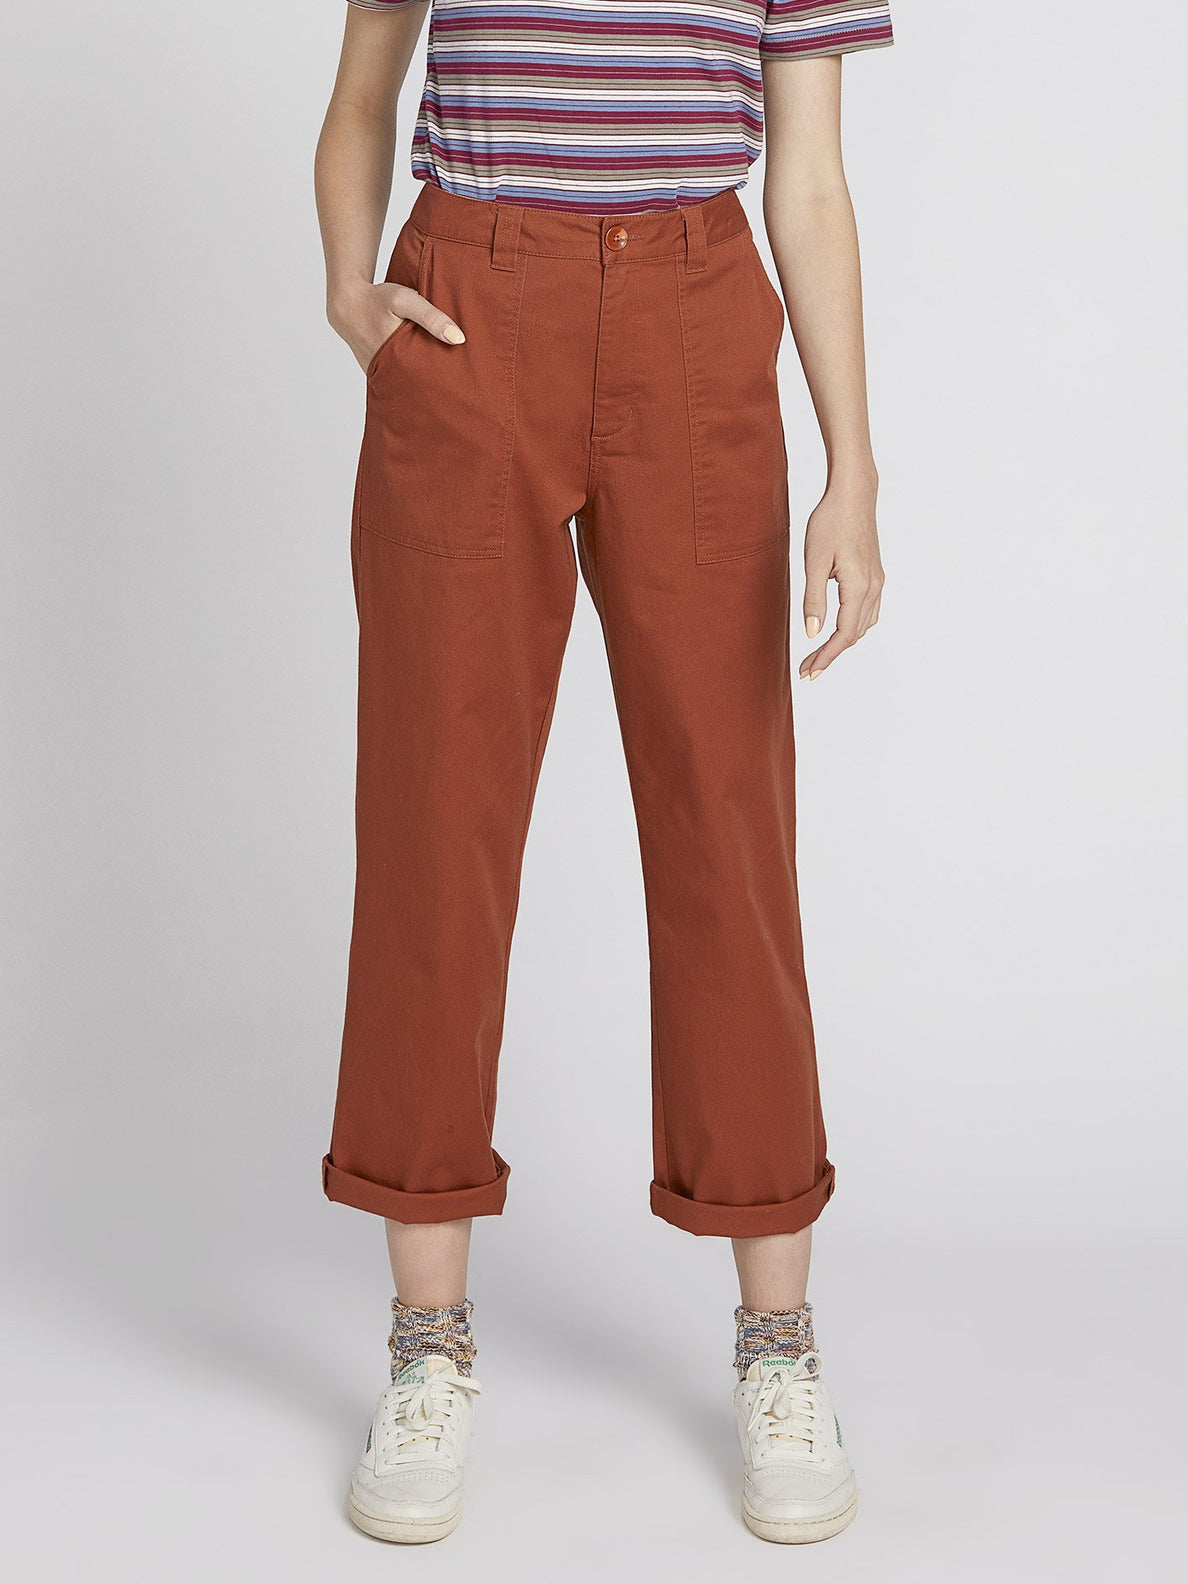 Frochickie Carpenter Pant - Rust (B1131903_RST) [2]